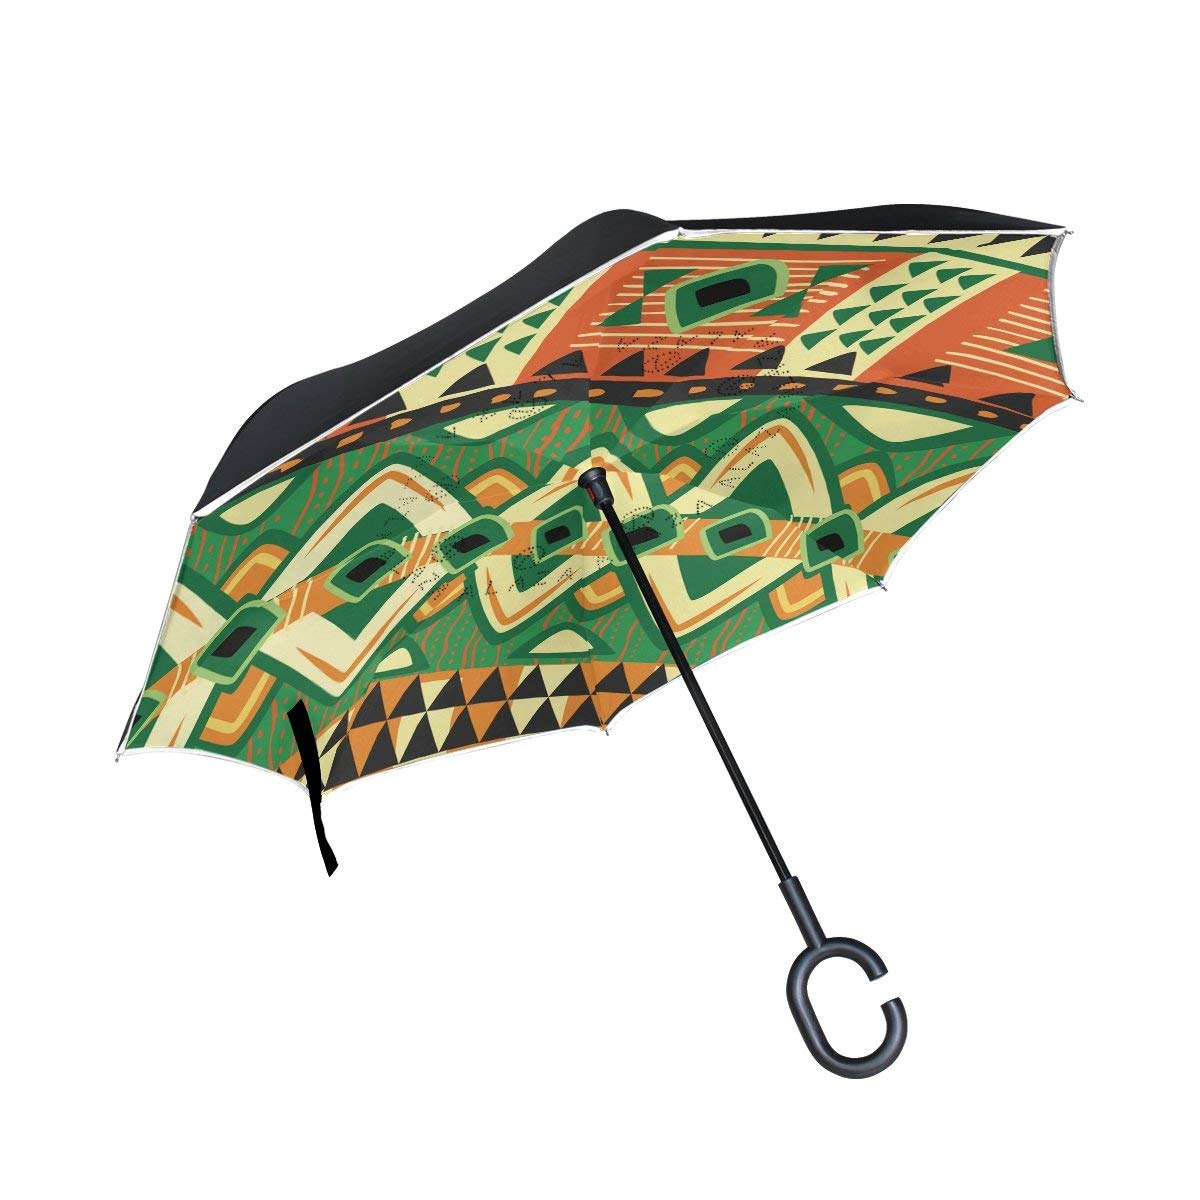 FOLPPLY Inverted Umbrella Vintage Ethnic Boho Geometric Print,Double Layer Reverse Umbrella Waterproof for Car Rain Outdoor with C-Shaped Handle